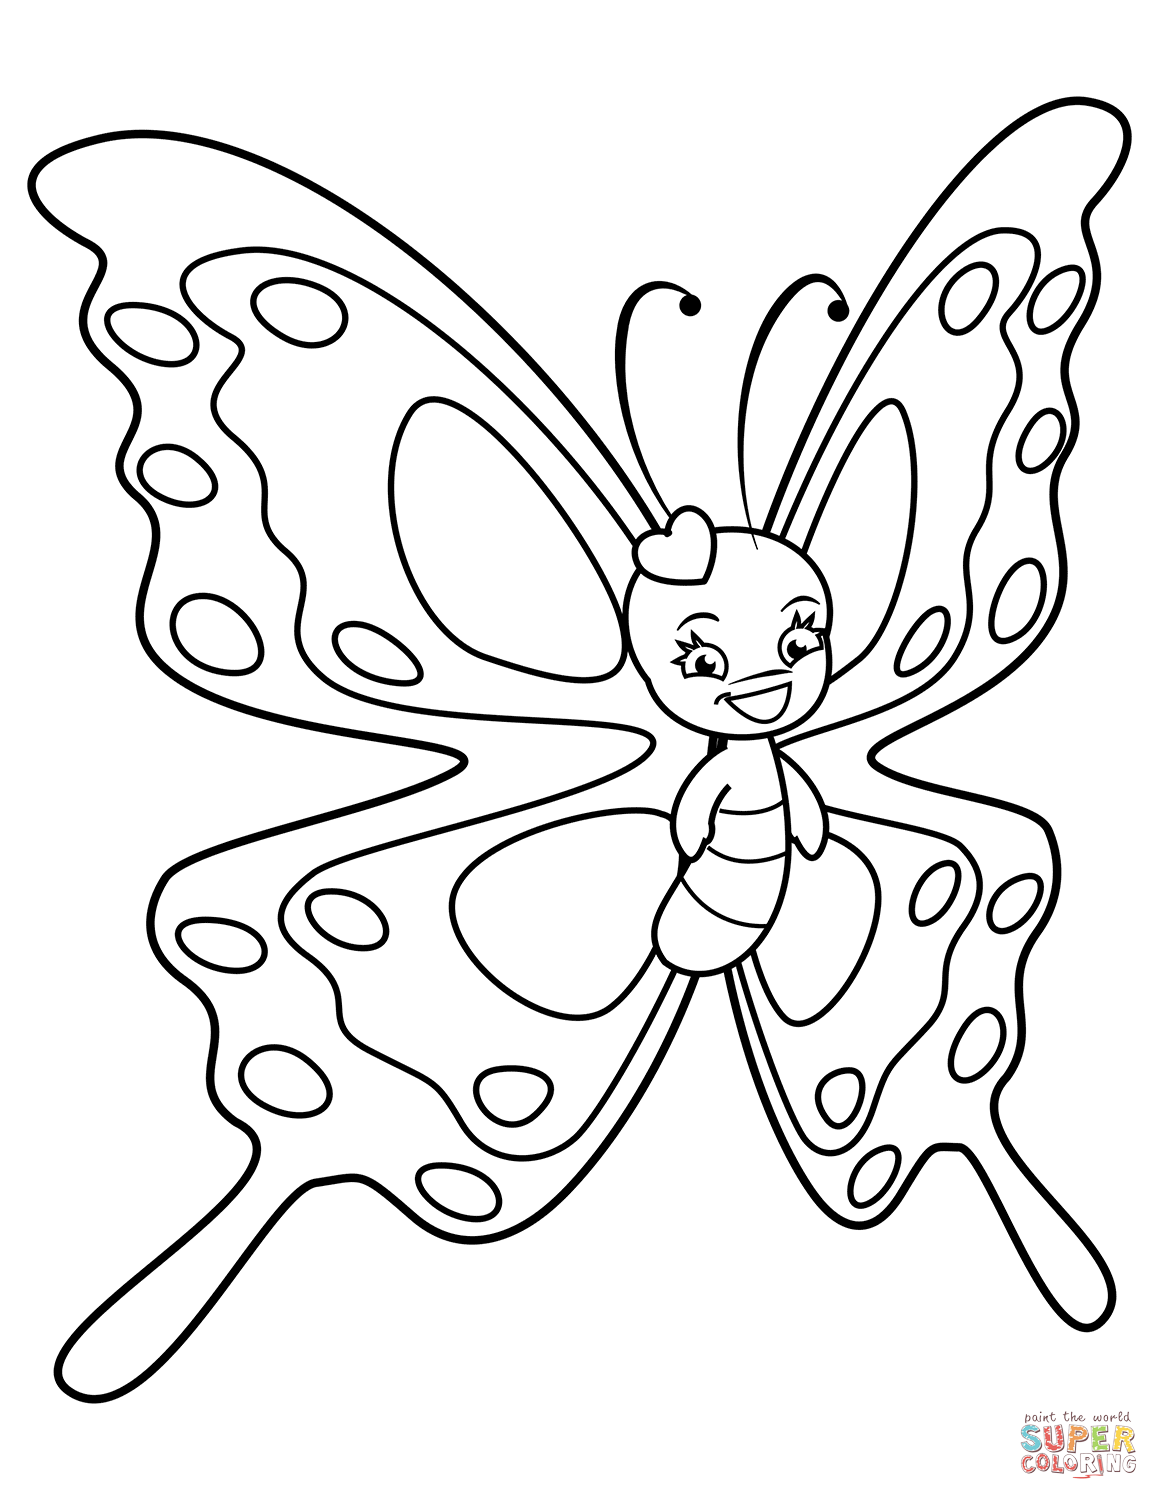 Cute Butterfly With Sweet Smile Super Coloring Butterfly Coloring Page Butterfly Printable Coloring Pages [ 1500 x 1159 Pixel ]